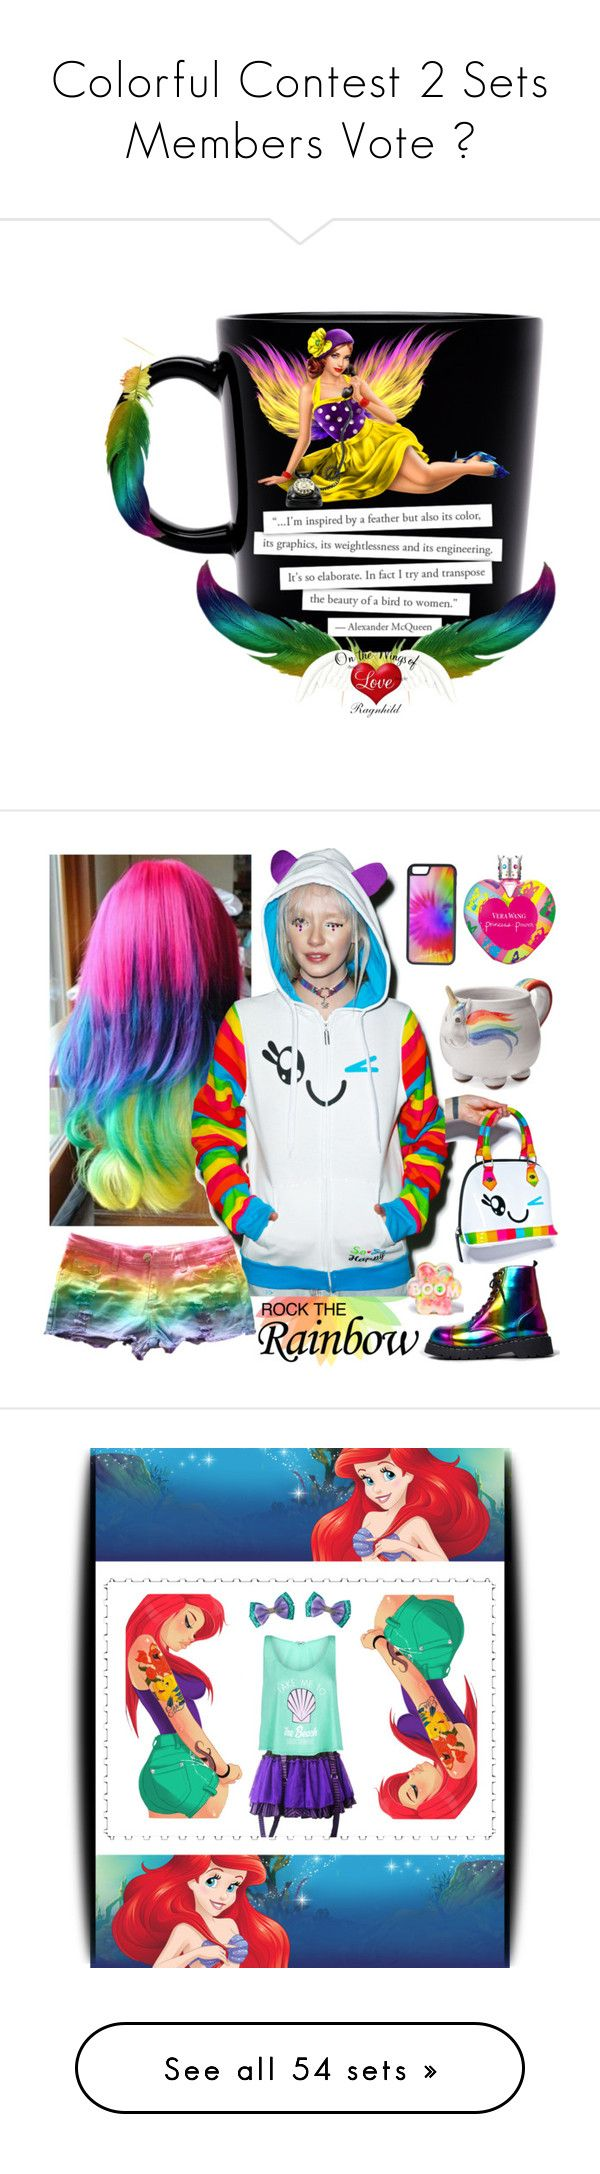 """""""Colorful Contest 2 Sets Members Vote """" by ragnh-mjos ❤ liked on Polyvore featuring contest, colorful, art, Vera Wang, Iron Fist, Elwood, CellPowerCases, T.U.K., Dirty Grl and So So Happy"""